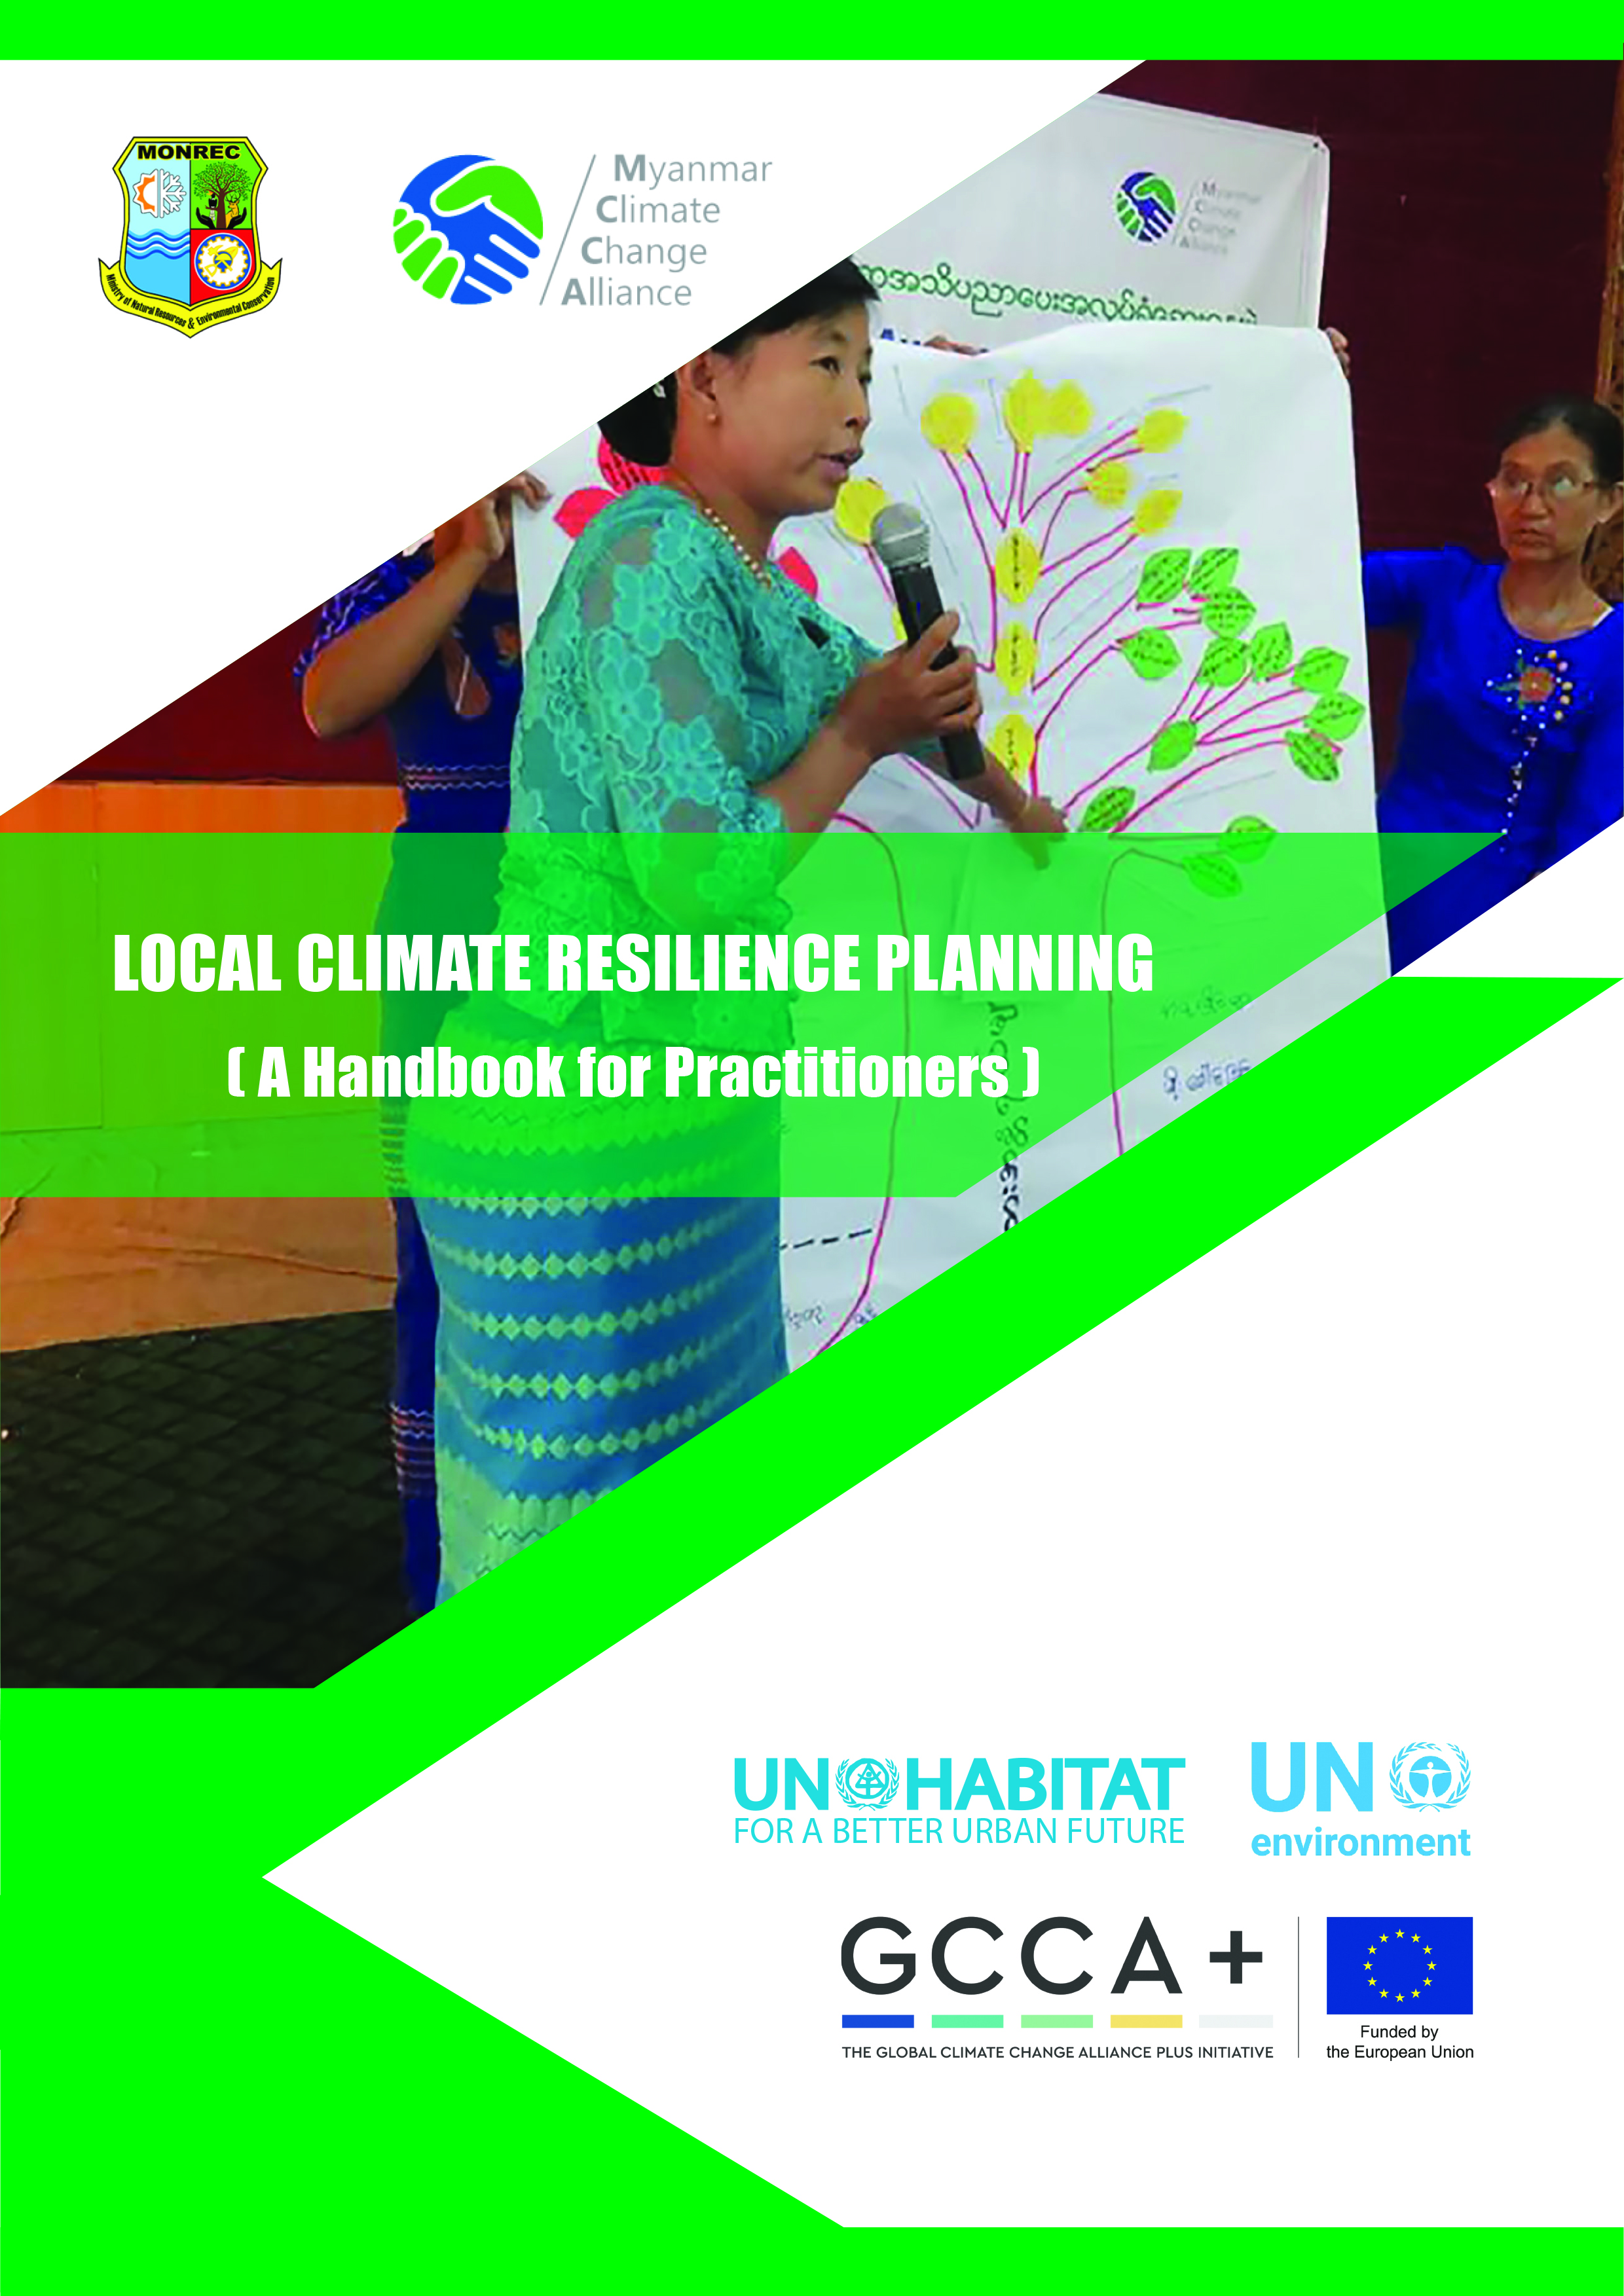 Local Climate Resilience Planning (A Handbook for Practitioners)